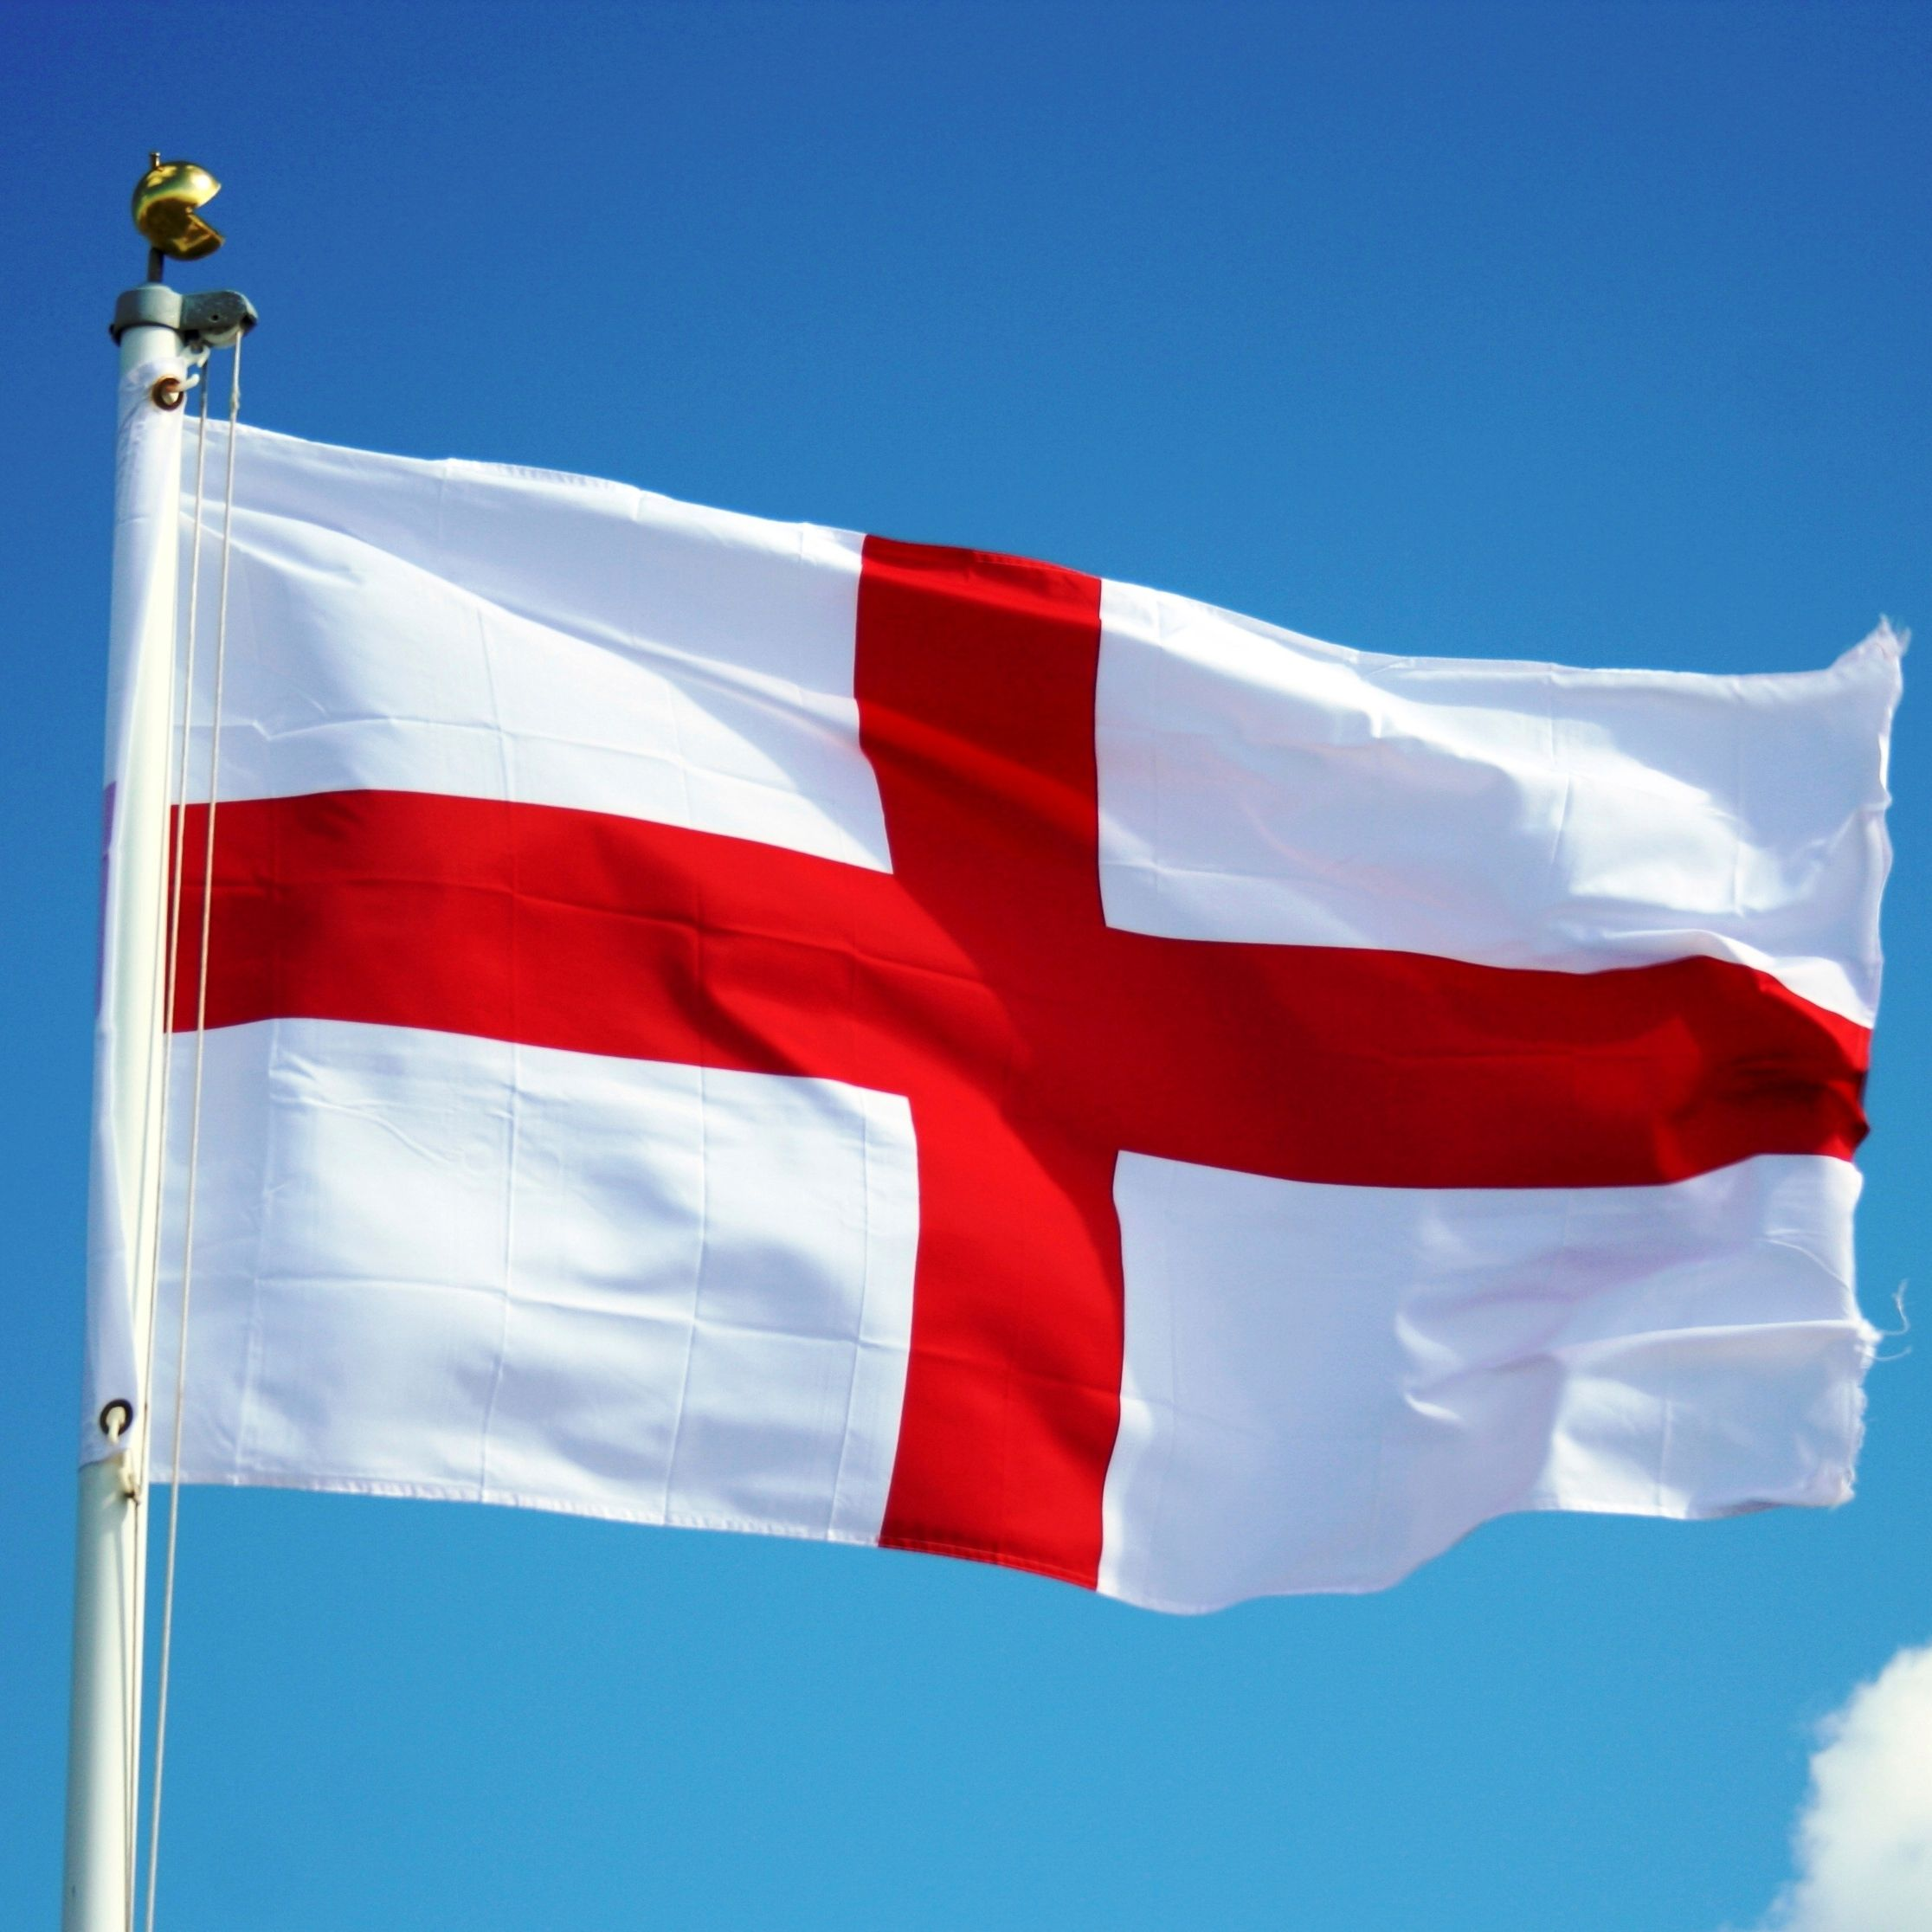 st george is known by his emblem of a red cross on a white